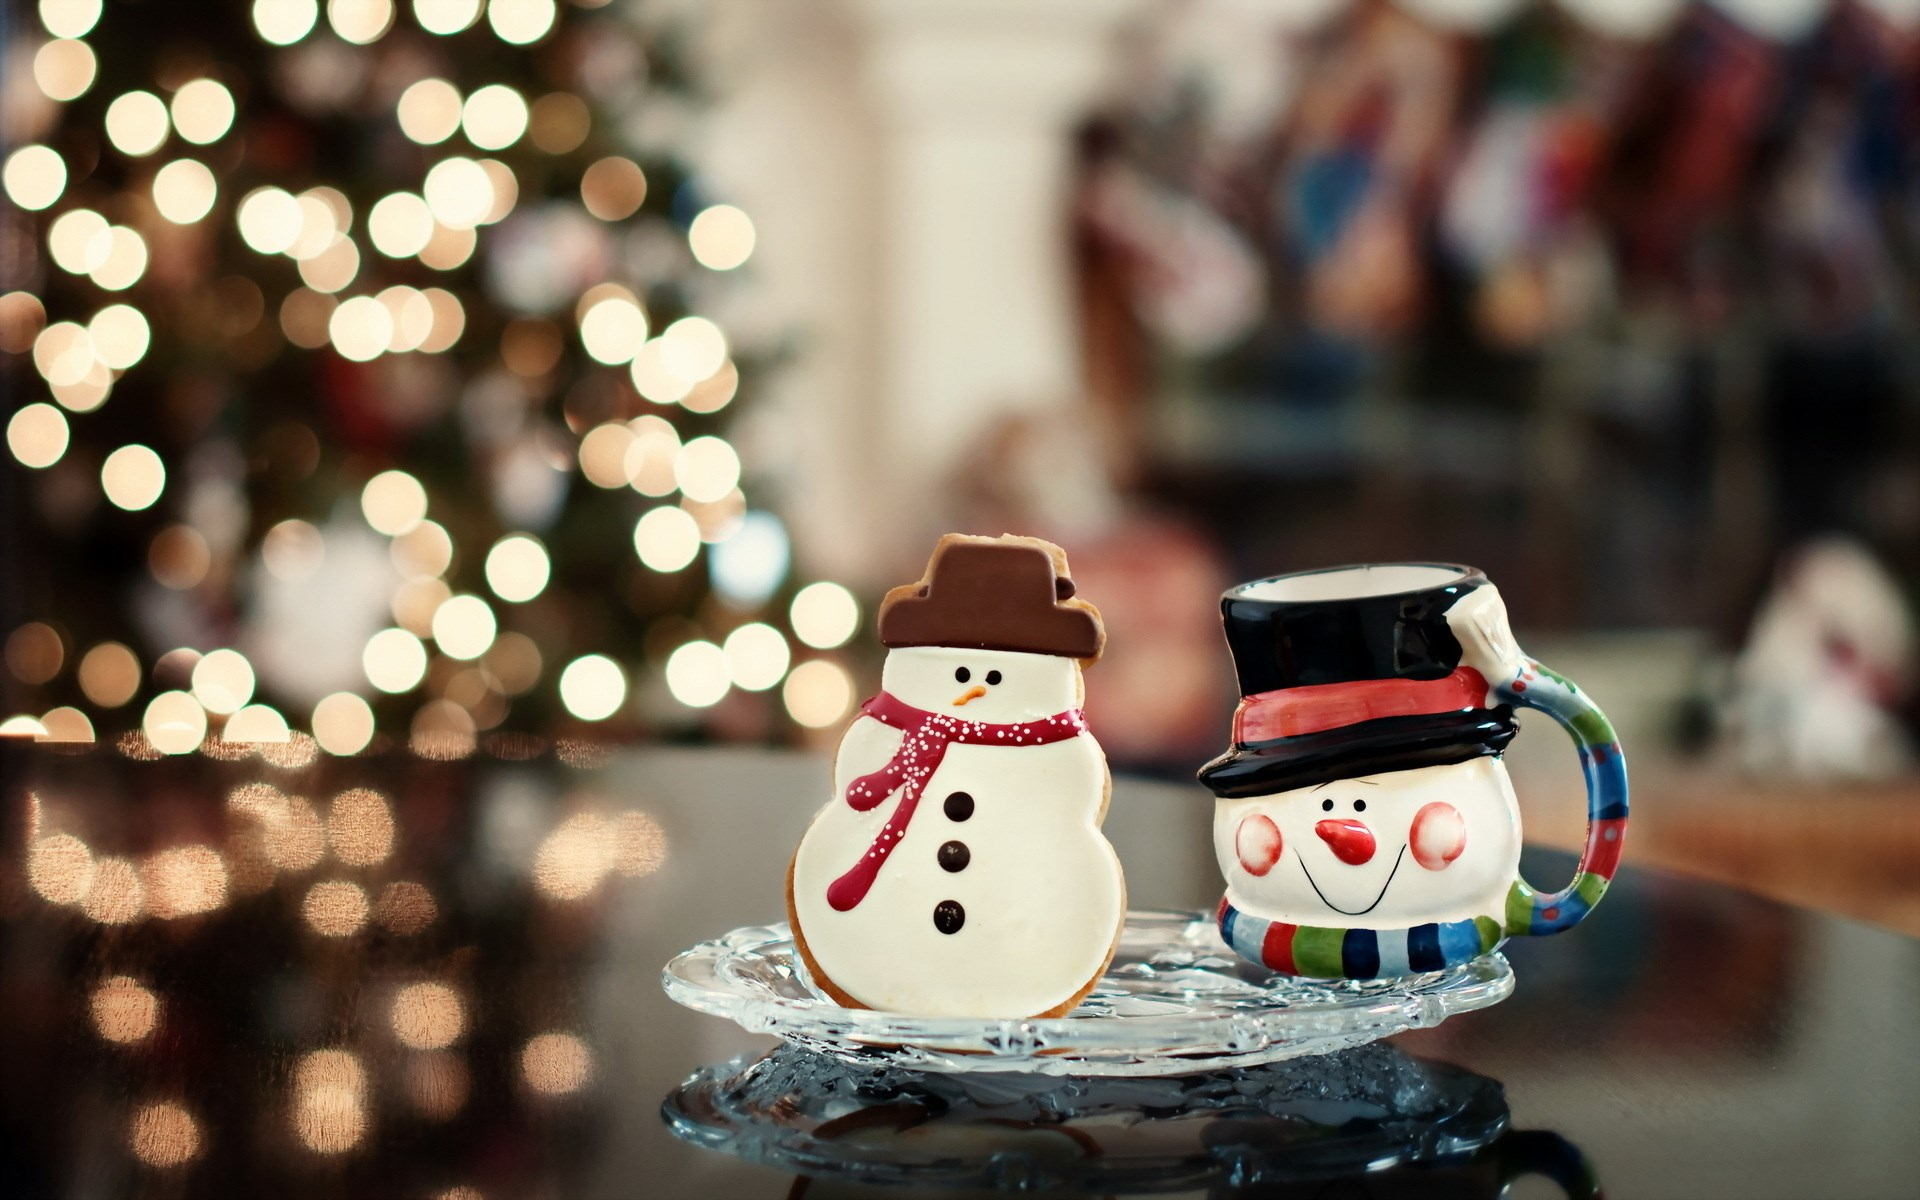 merry christmas wallpapers snowman